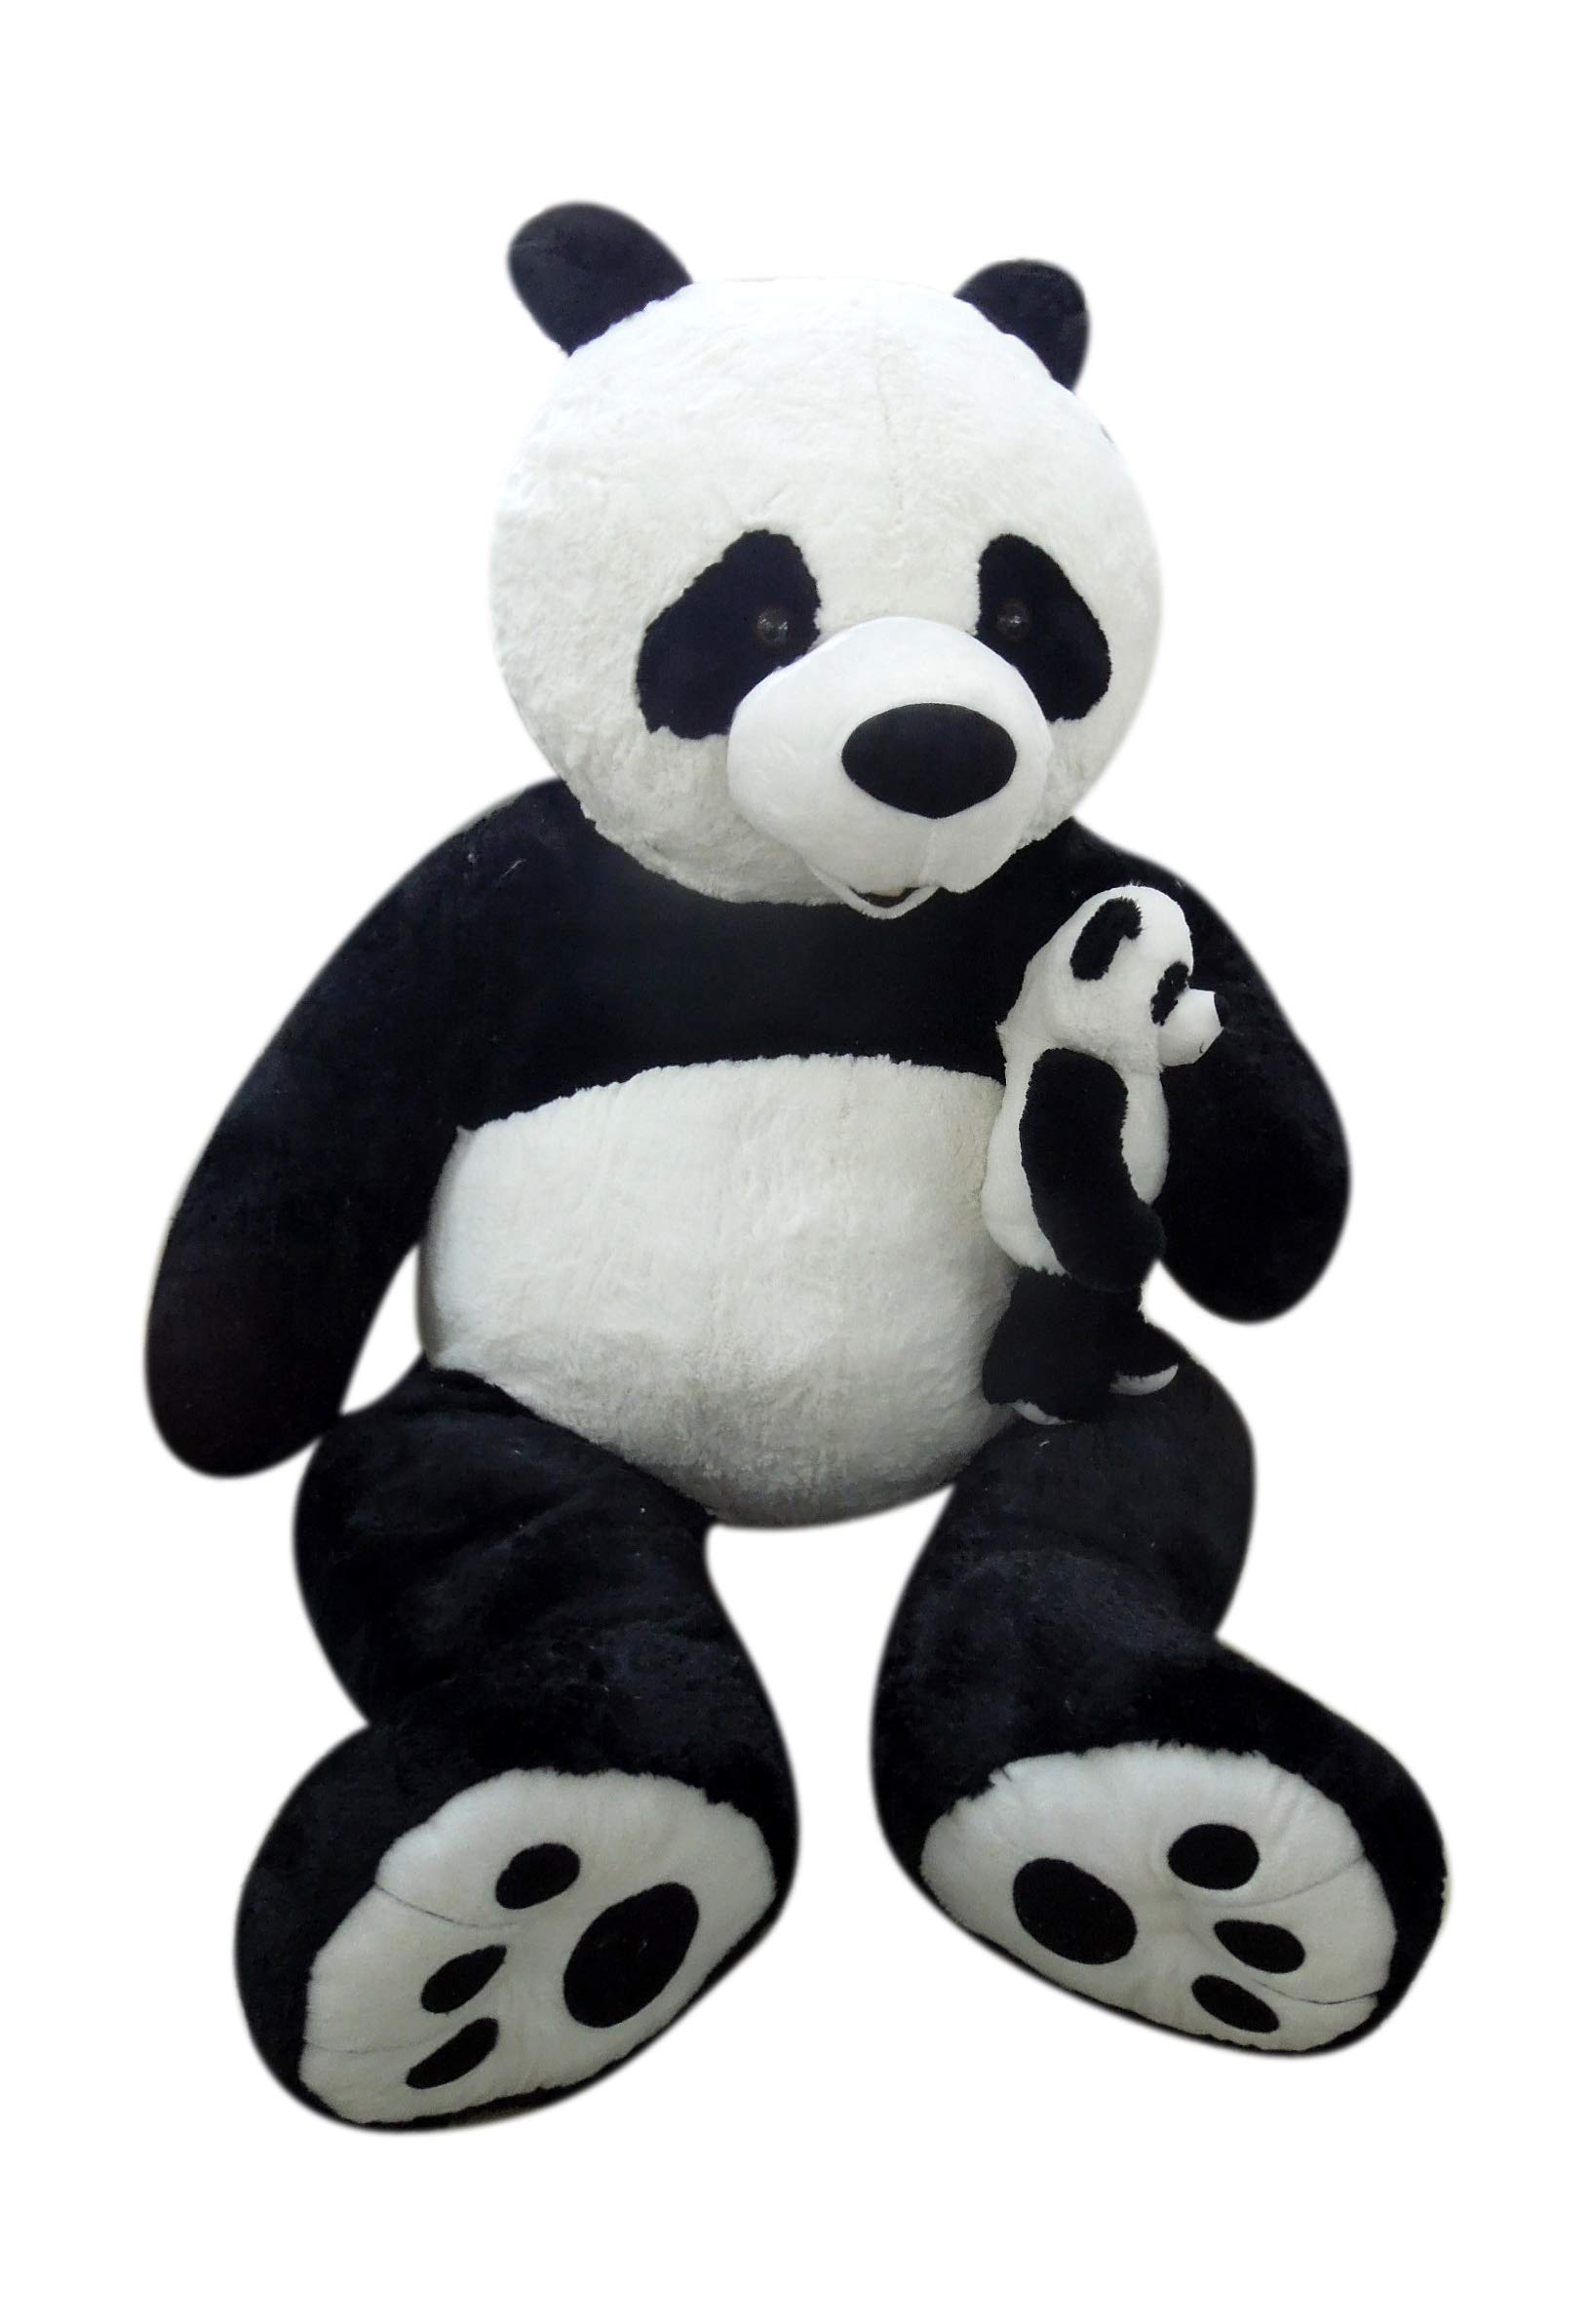 Giant Stuffed Animal 80'' (6.7 Feet) - Unique Gift for a Loved One - Soft and Cuddly (Panda with Baby) by Goffa